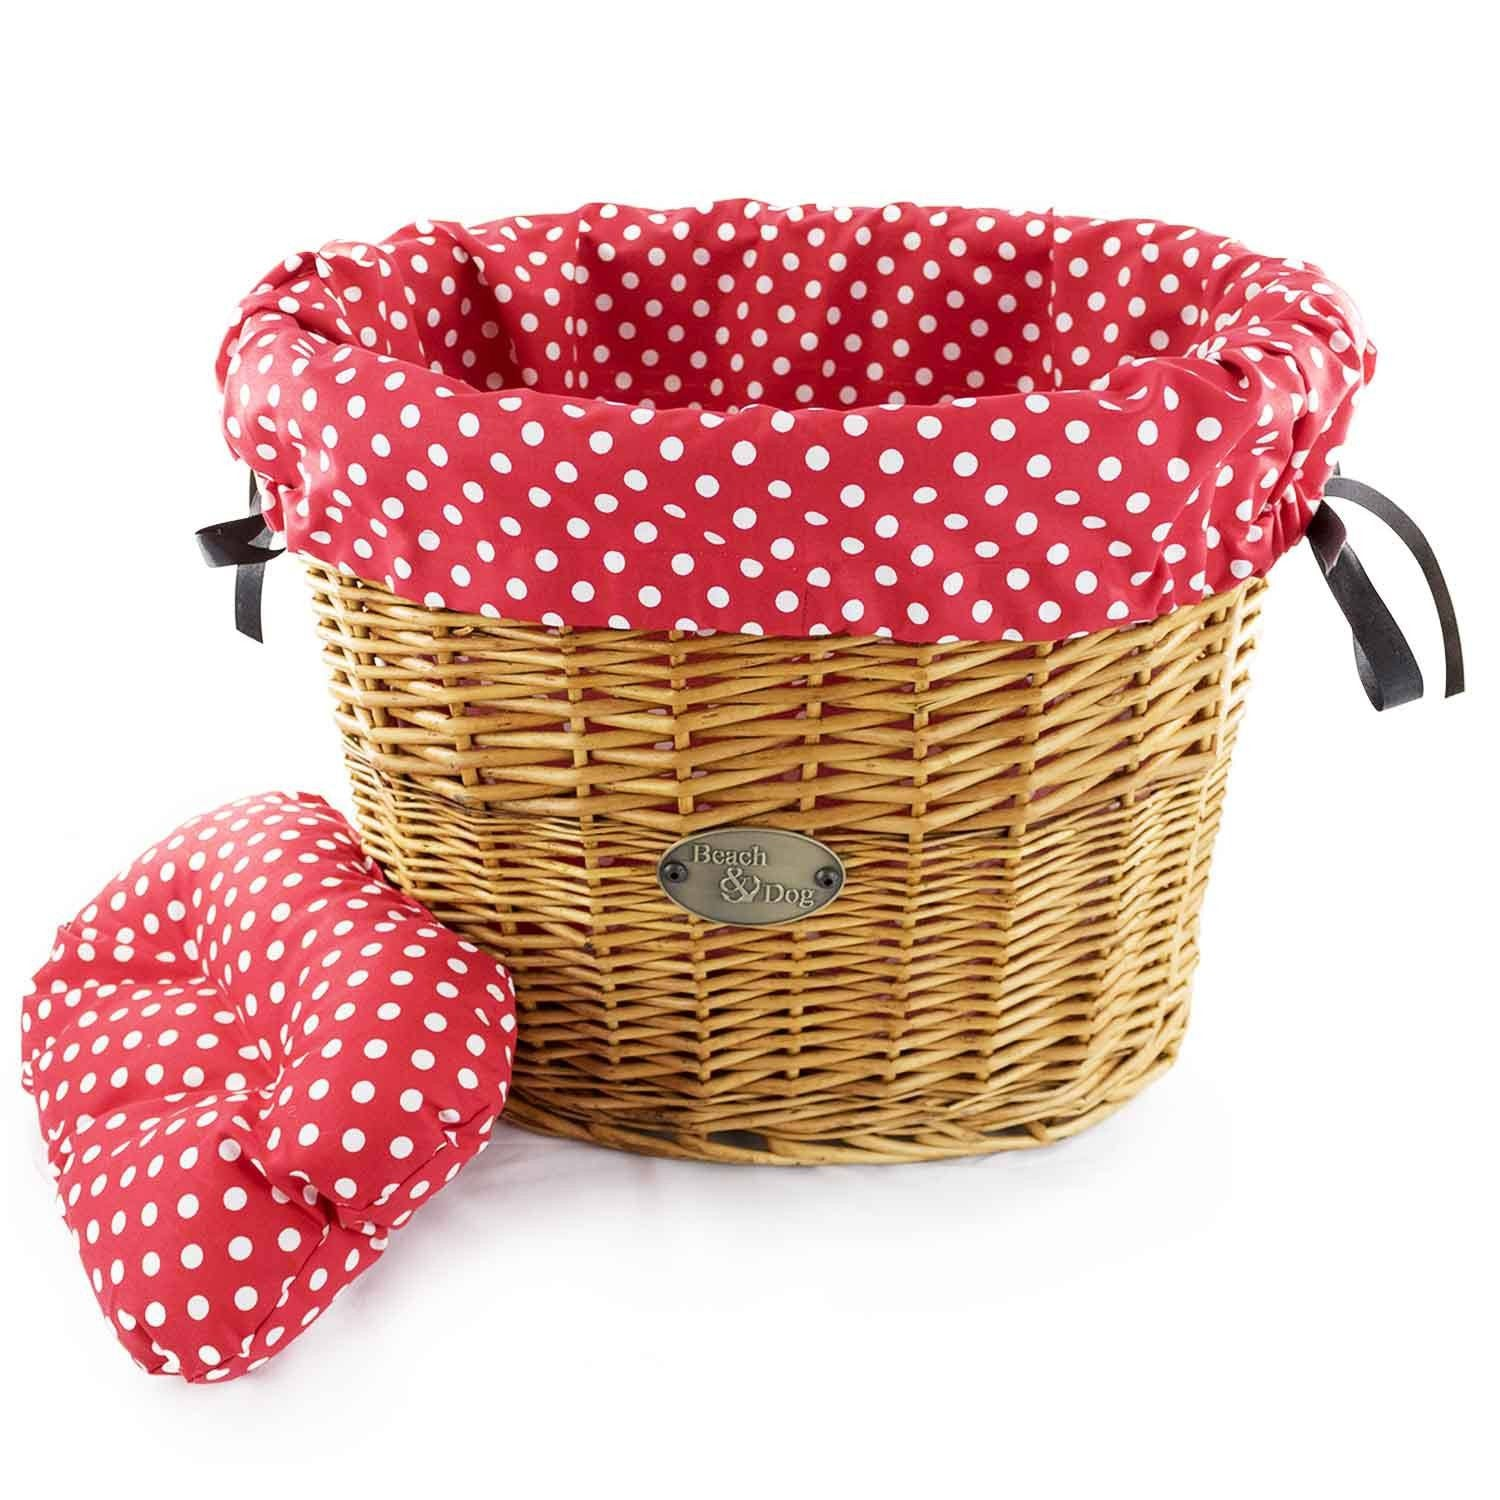 Strawberry Shortcake Too Basket Liner - Beach & Dog Co.